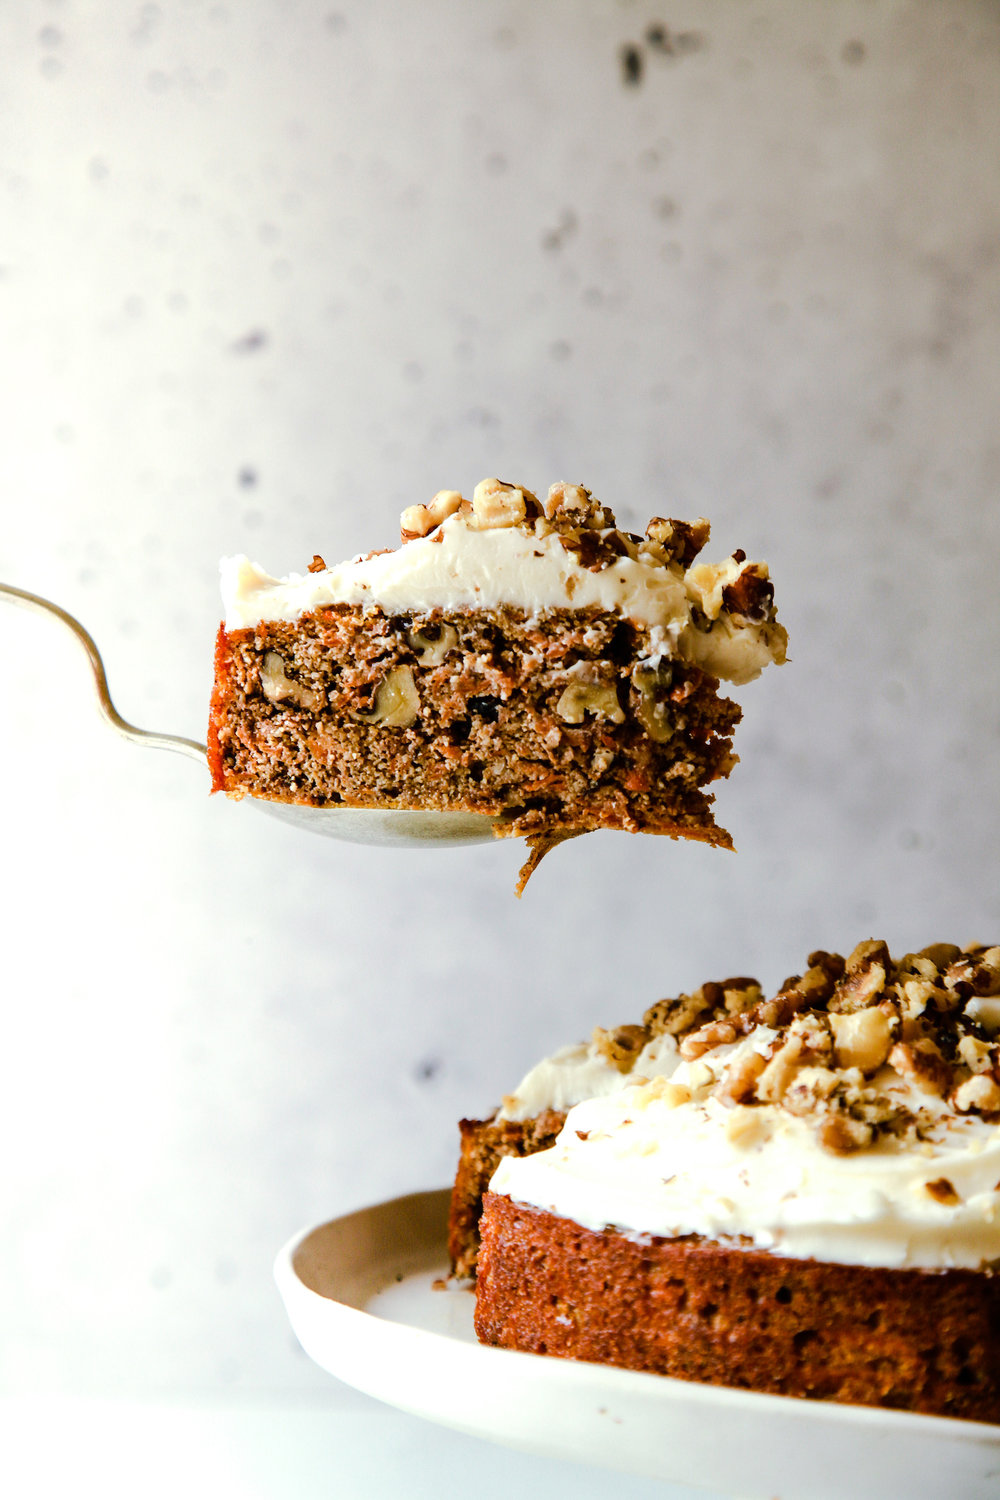 carrotcake1 copy.jpg